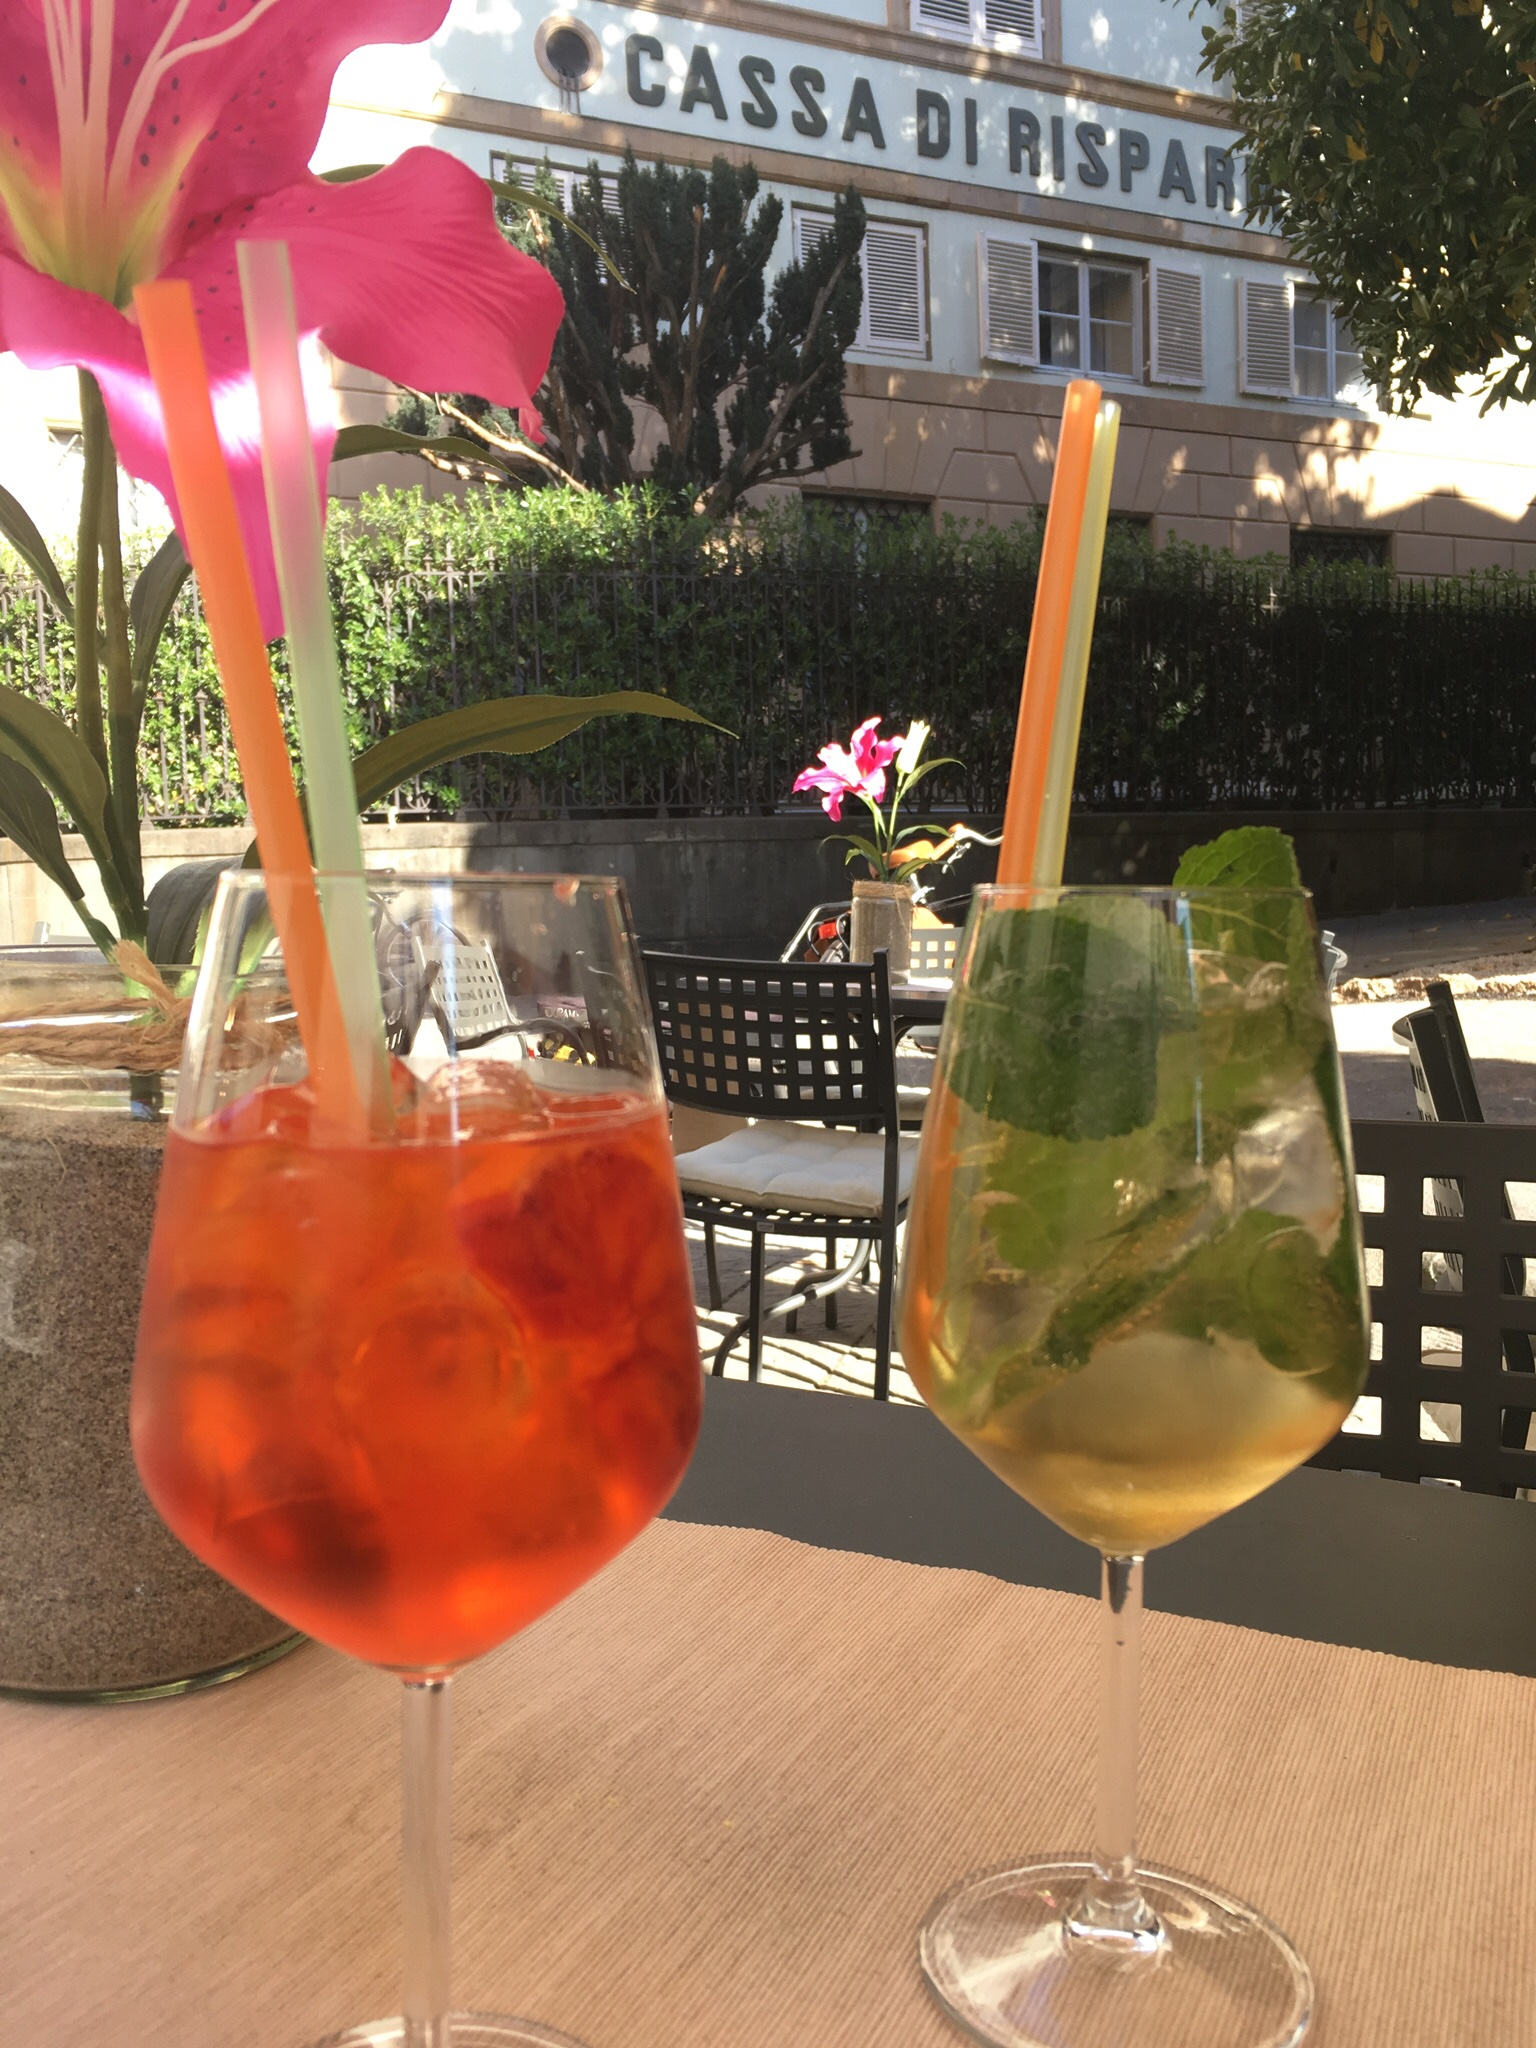 Enoteca Santa Cristina in Lucca has a great selection of summer drinks.